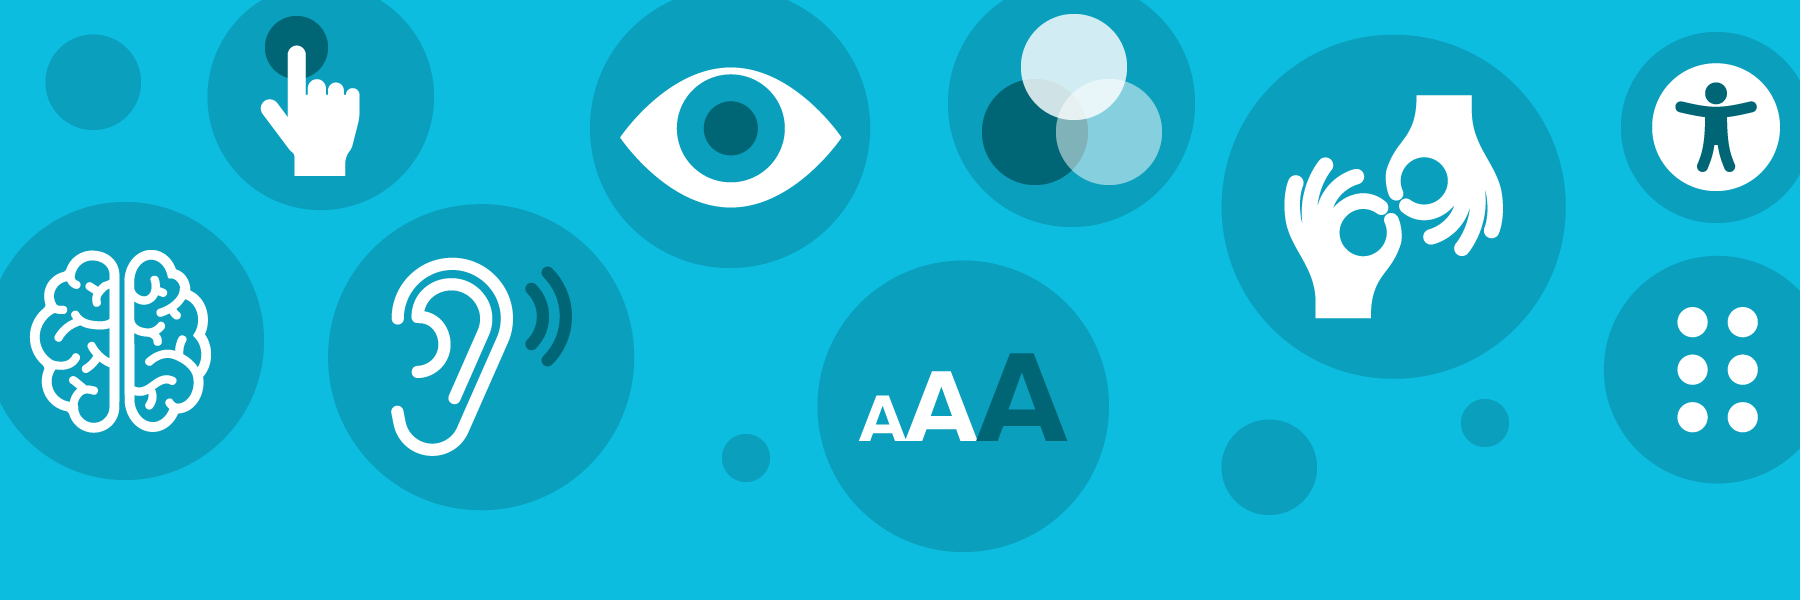 accessibility icons representing eye sight, motor control, hearing, etc.